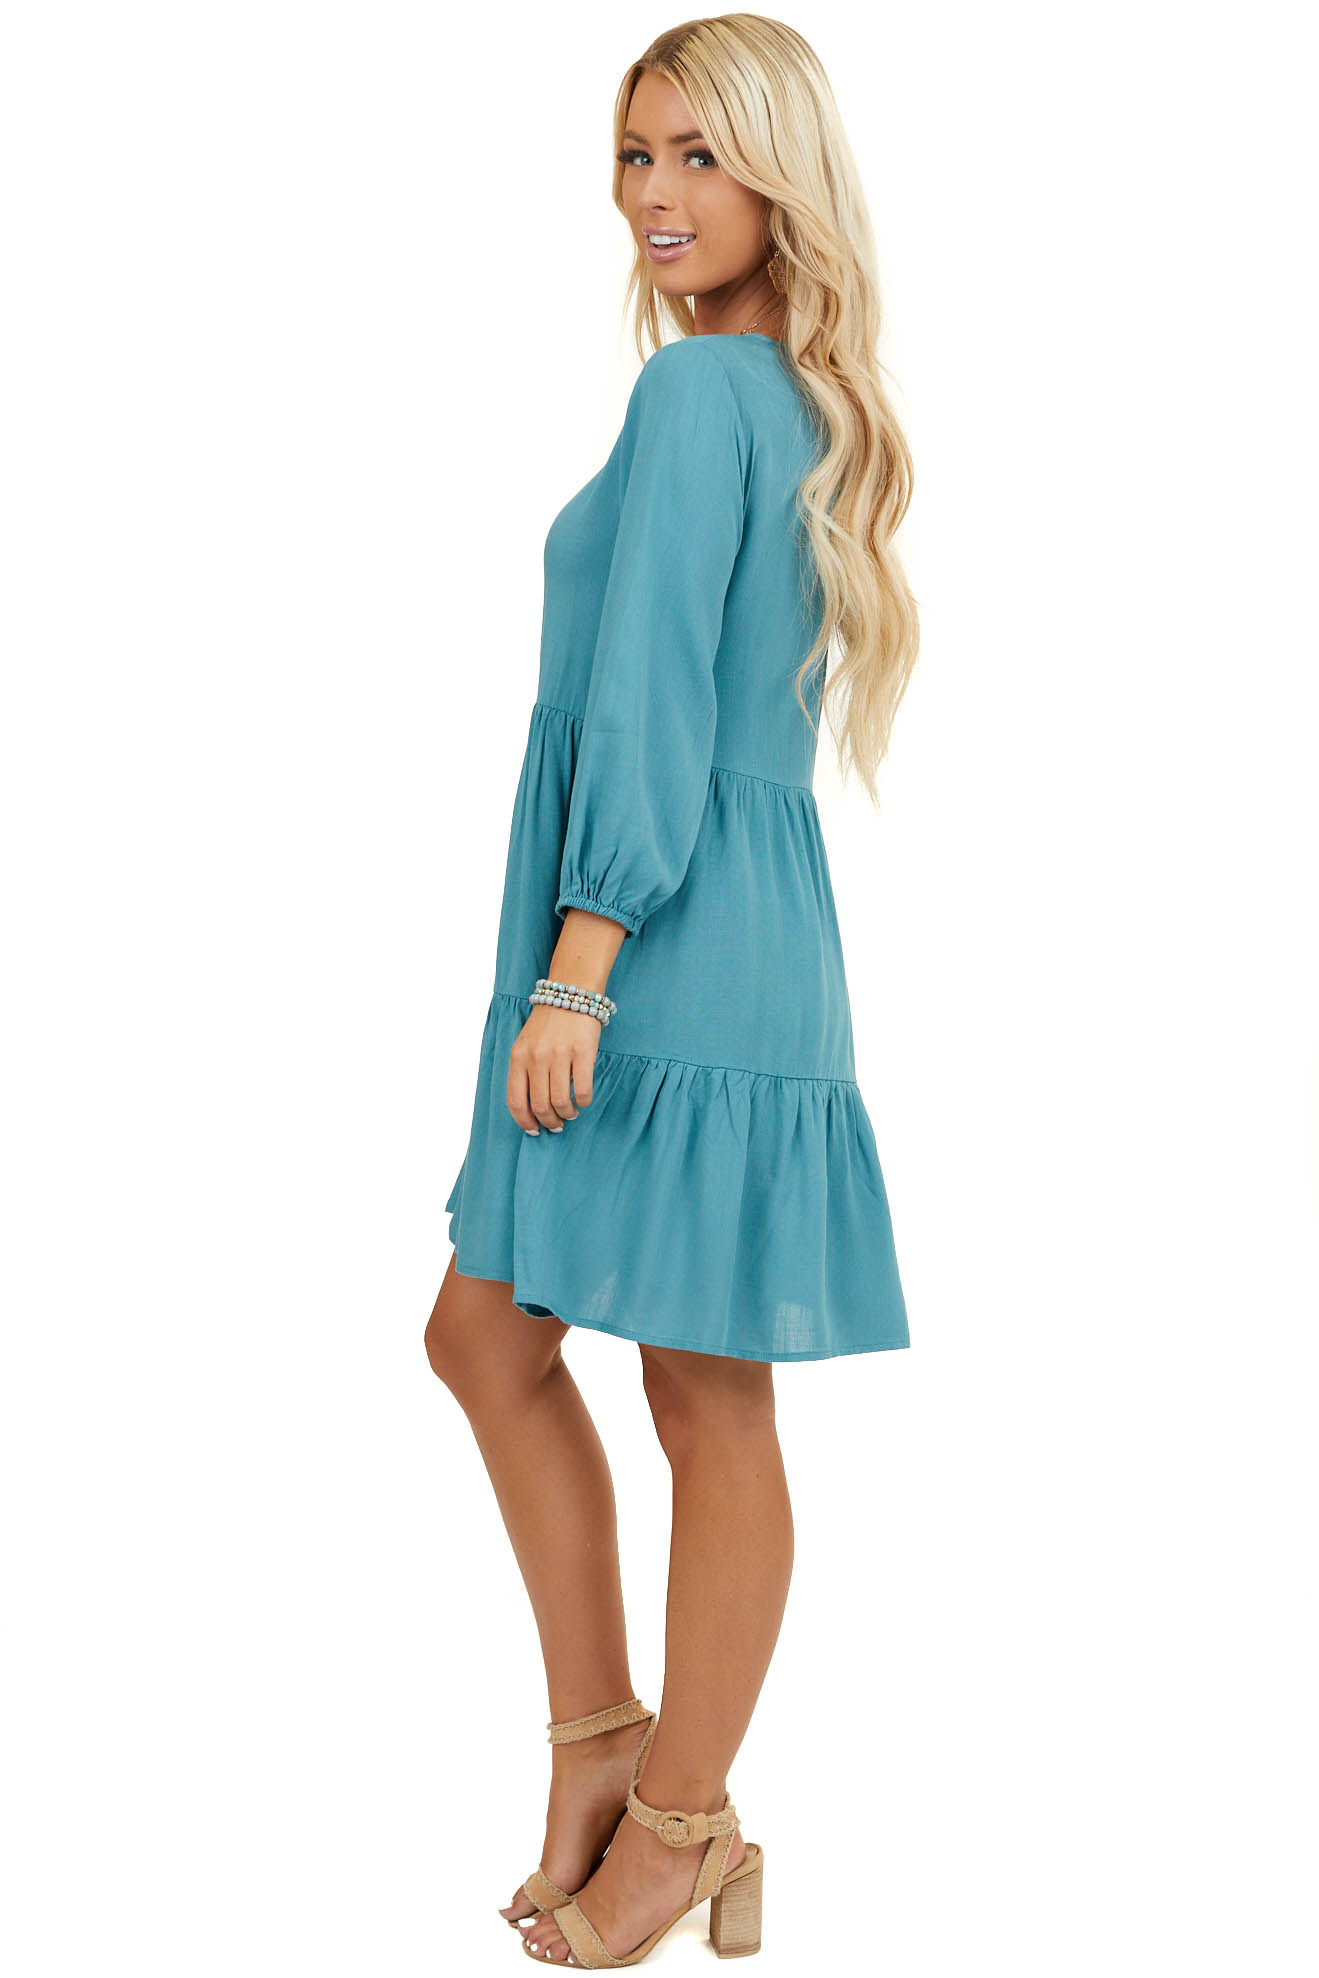 Pine Green Tiered Woven Dress with 3/4 Length Bubble Sleeves